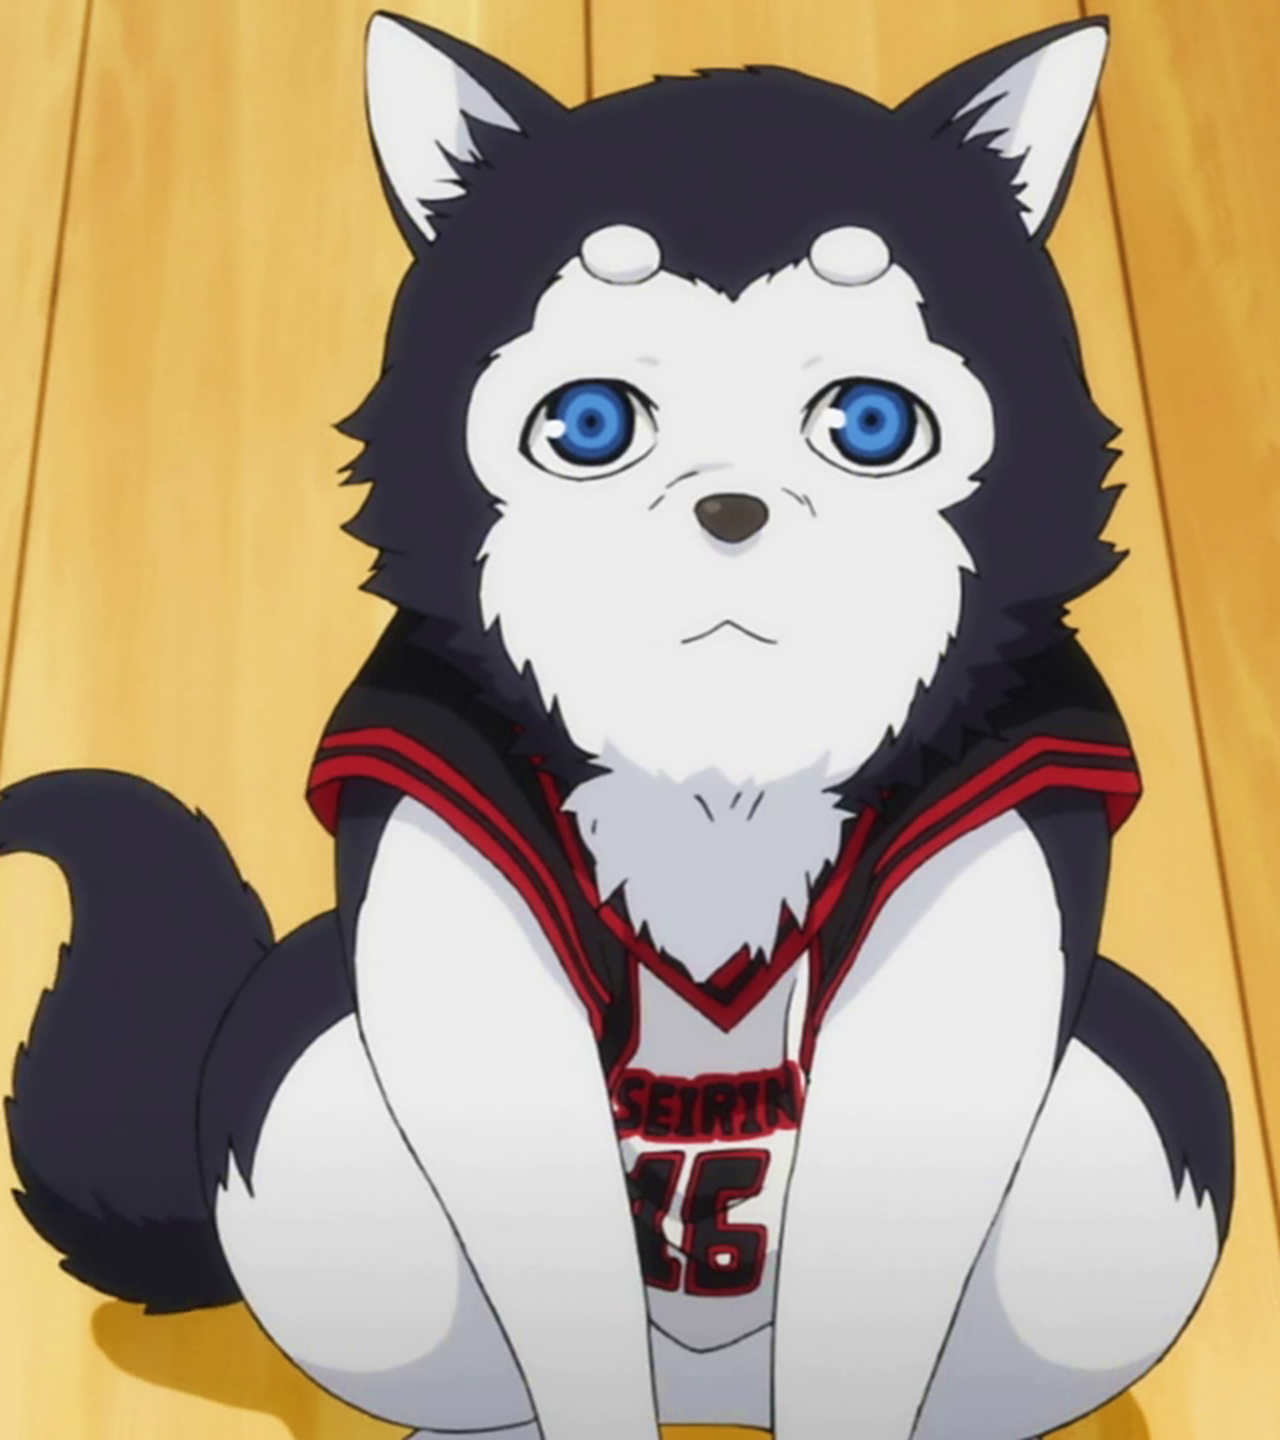 http://images3.wikia.nocookie.net/__cb20121123204603/kurokonobasuke/images/7/72/Tetsuya_-2_with_Jersey_(Ep.10_SC).png